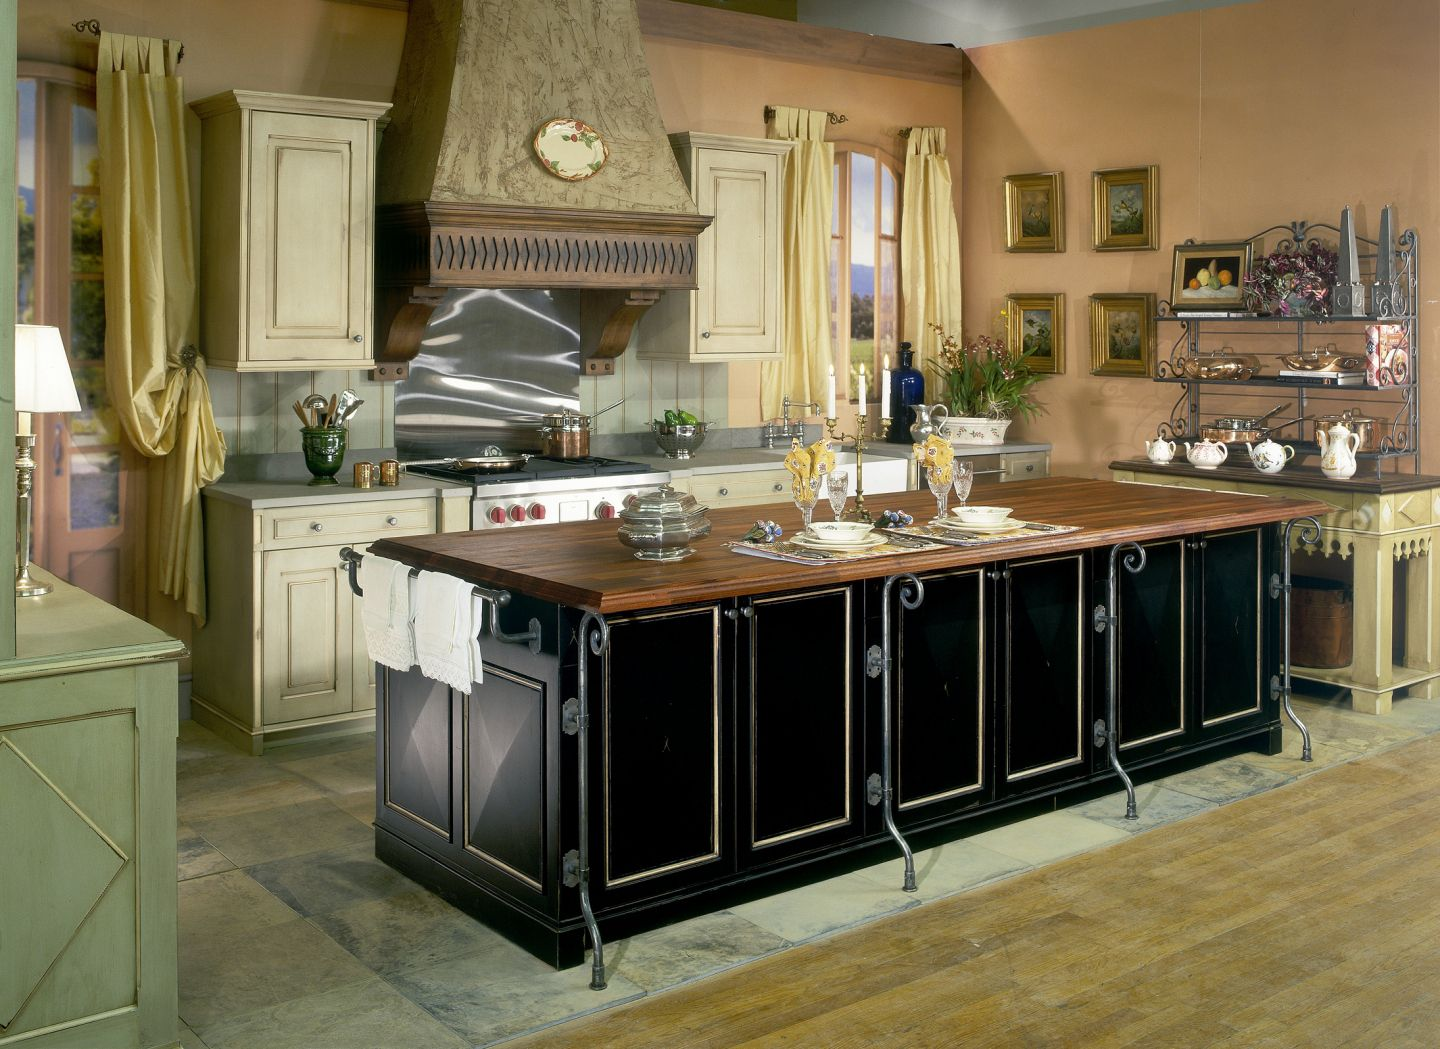 Fine Kitchen FUrniture With Black Bar Table Using Brown Wooden Top